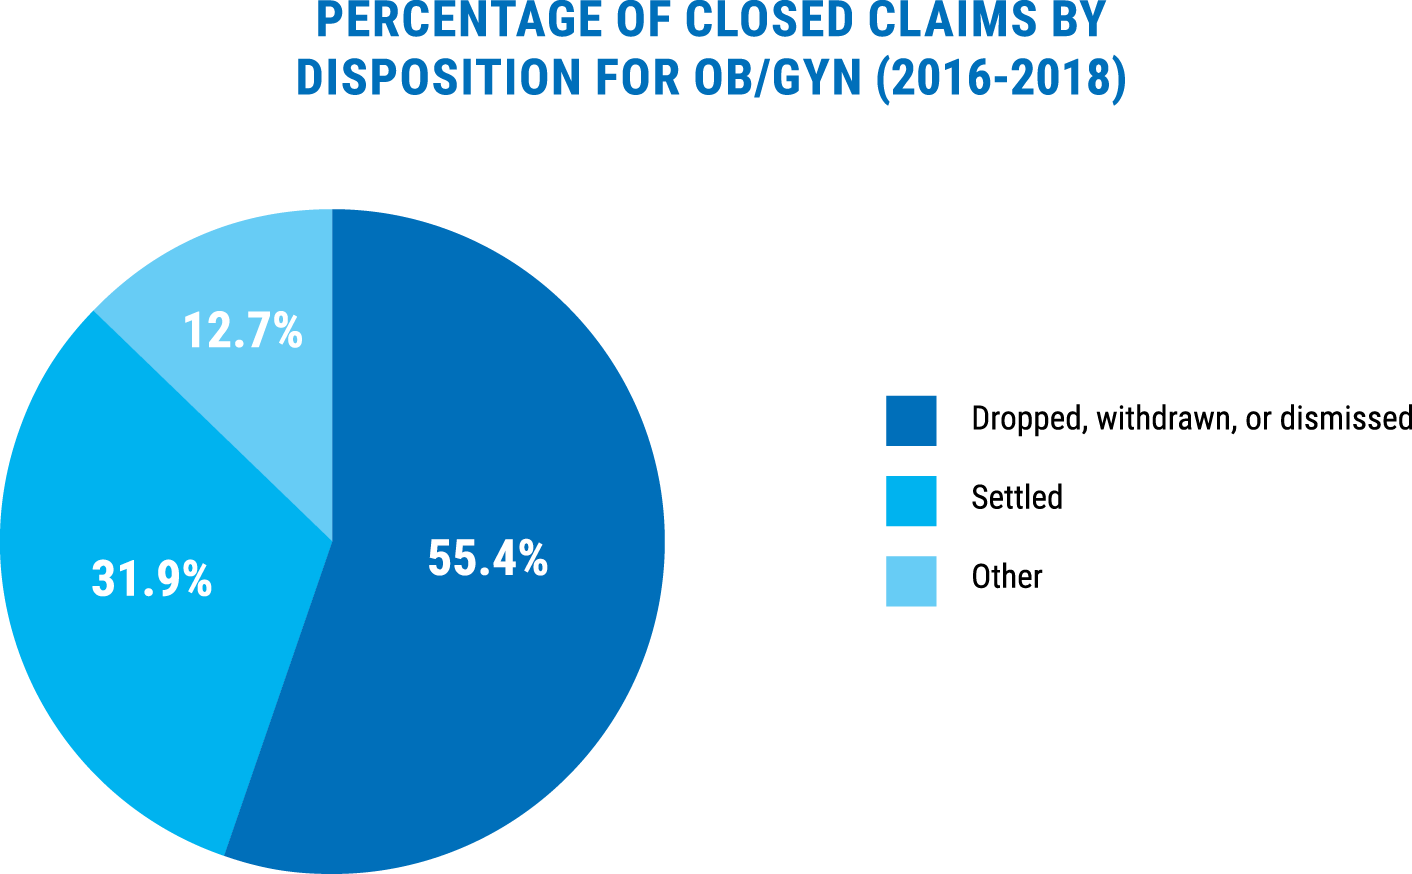 percentage of closed claims by disposition